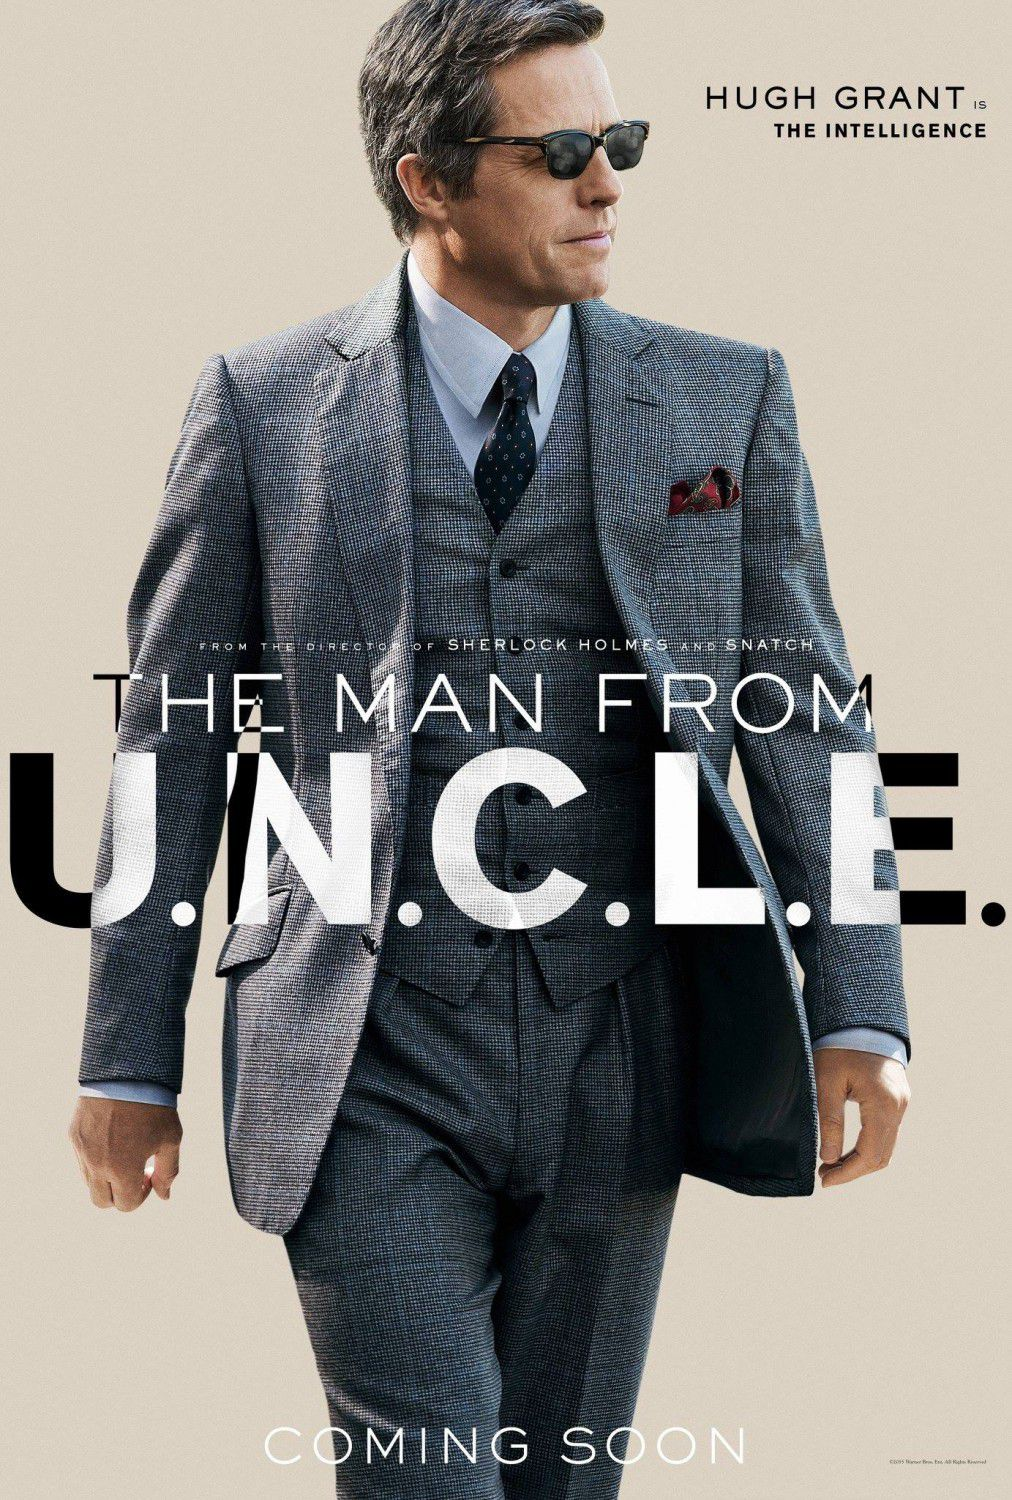 U.N.C.L.E. - Man from UNCLE -  Hugh Grant